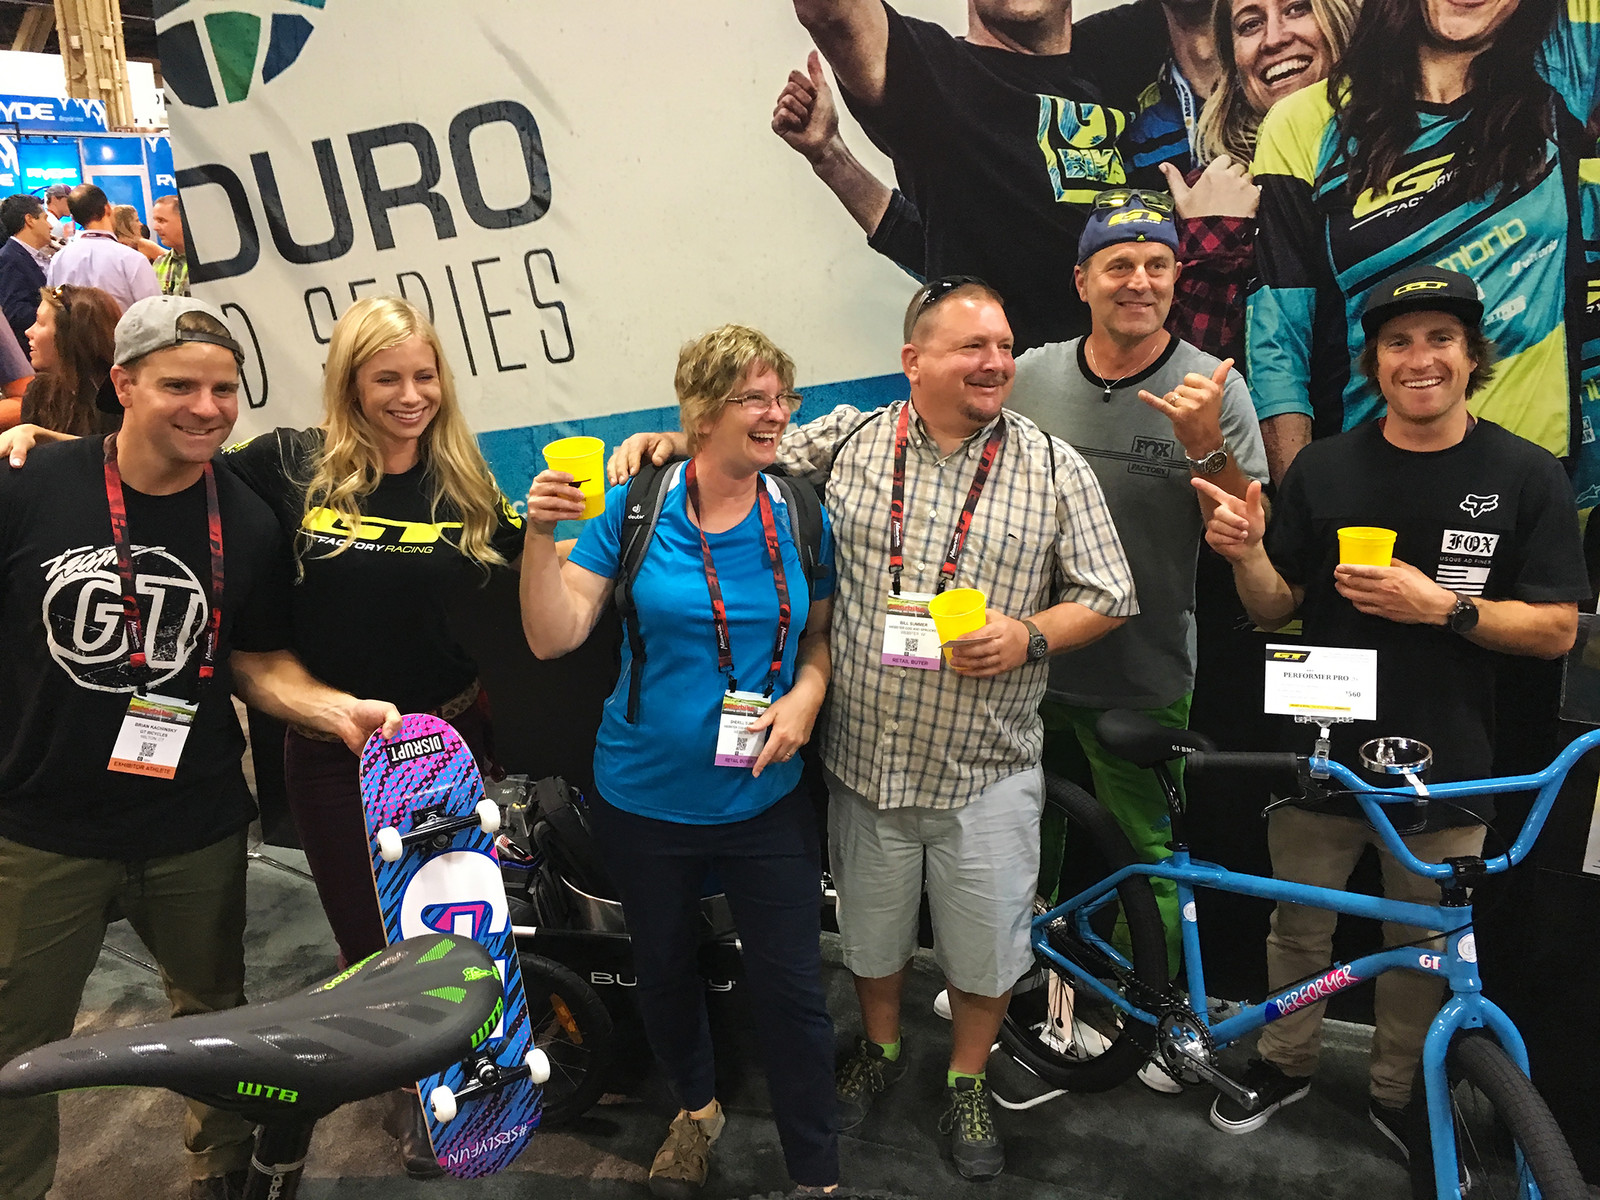 GT Says Fun is Serious Business! - INTERBIKE - 2017 Women's Mountain Bike Gear - Mountain Biking Pictures - Vital MTB